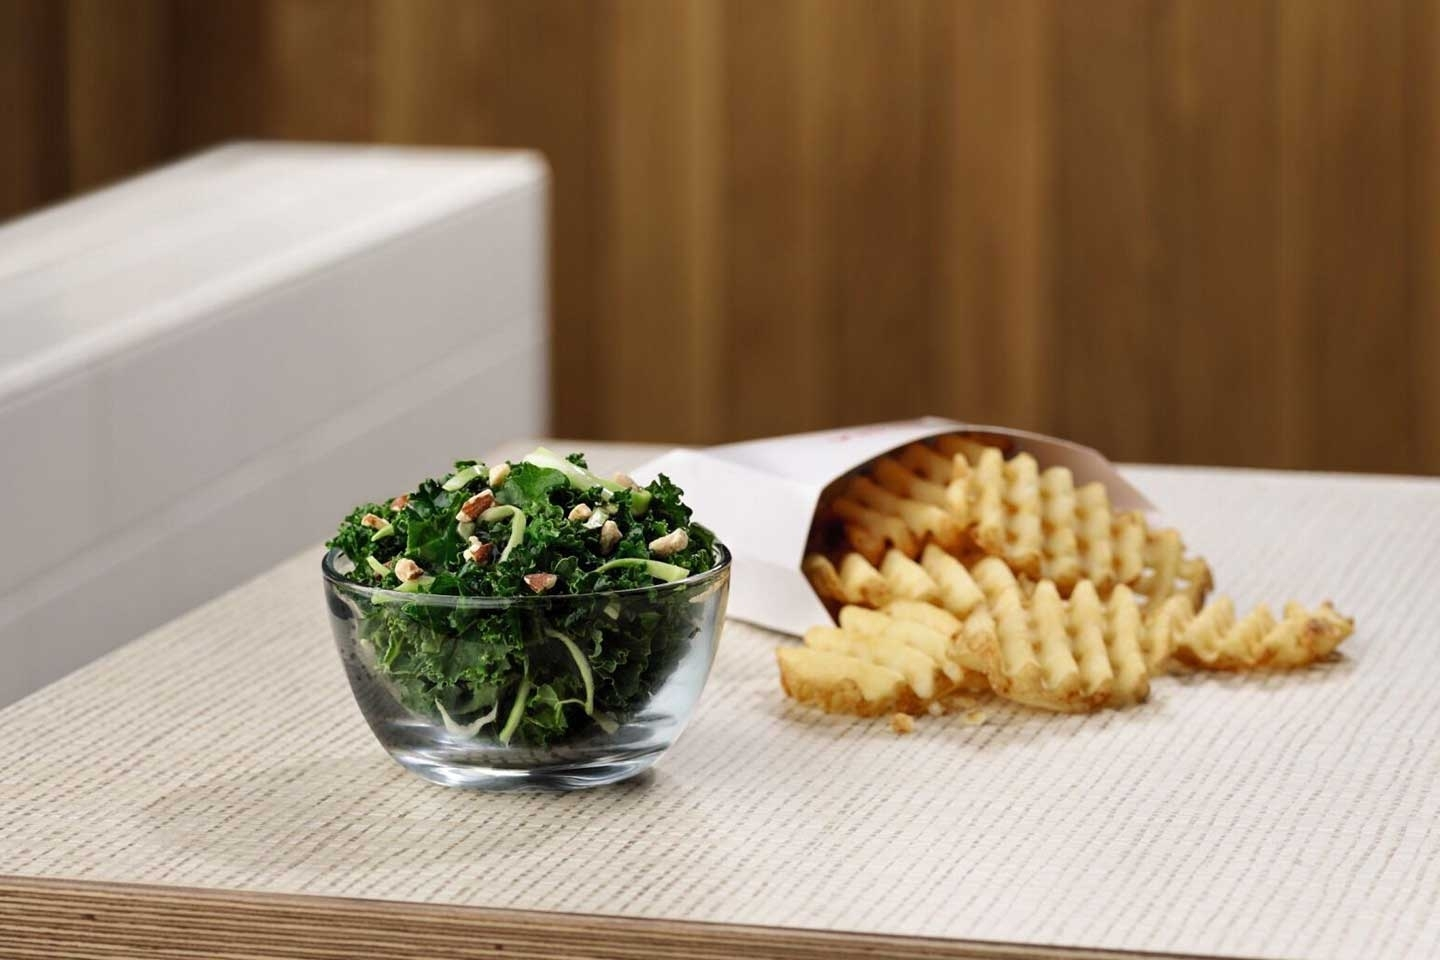 Chick-Fil-A Introduces Kale Crunch Side To Menus Nationwide throughout Chic Fil A Calendar 2020